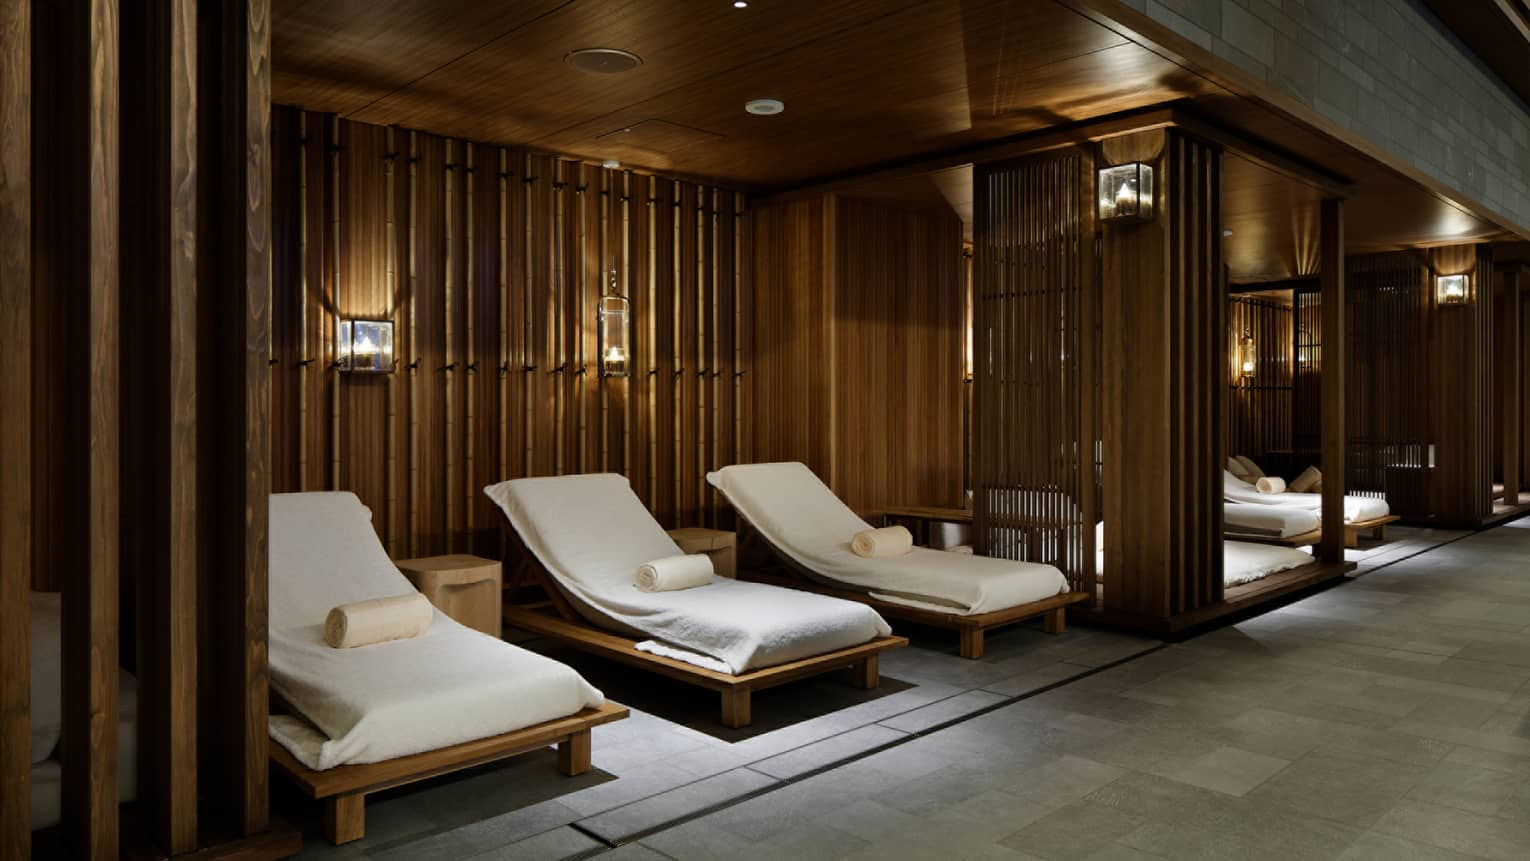 Lounge chairs with white towels under wood walls in spa